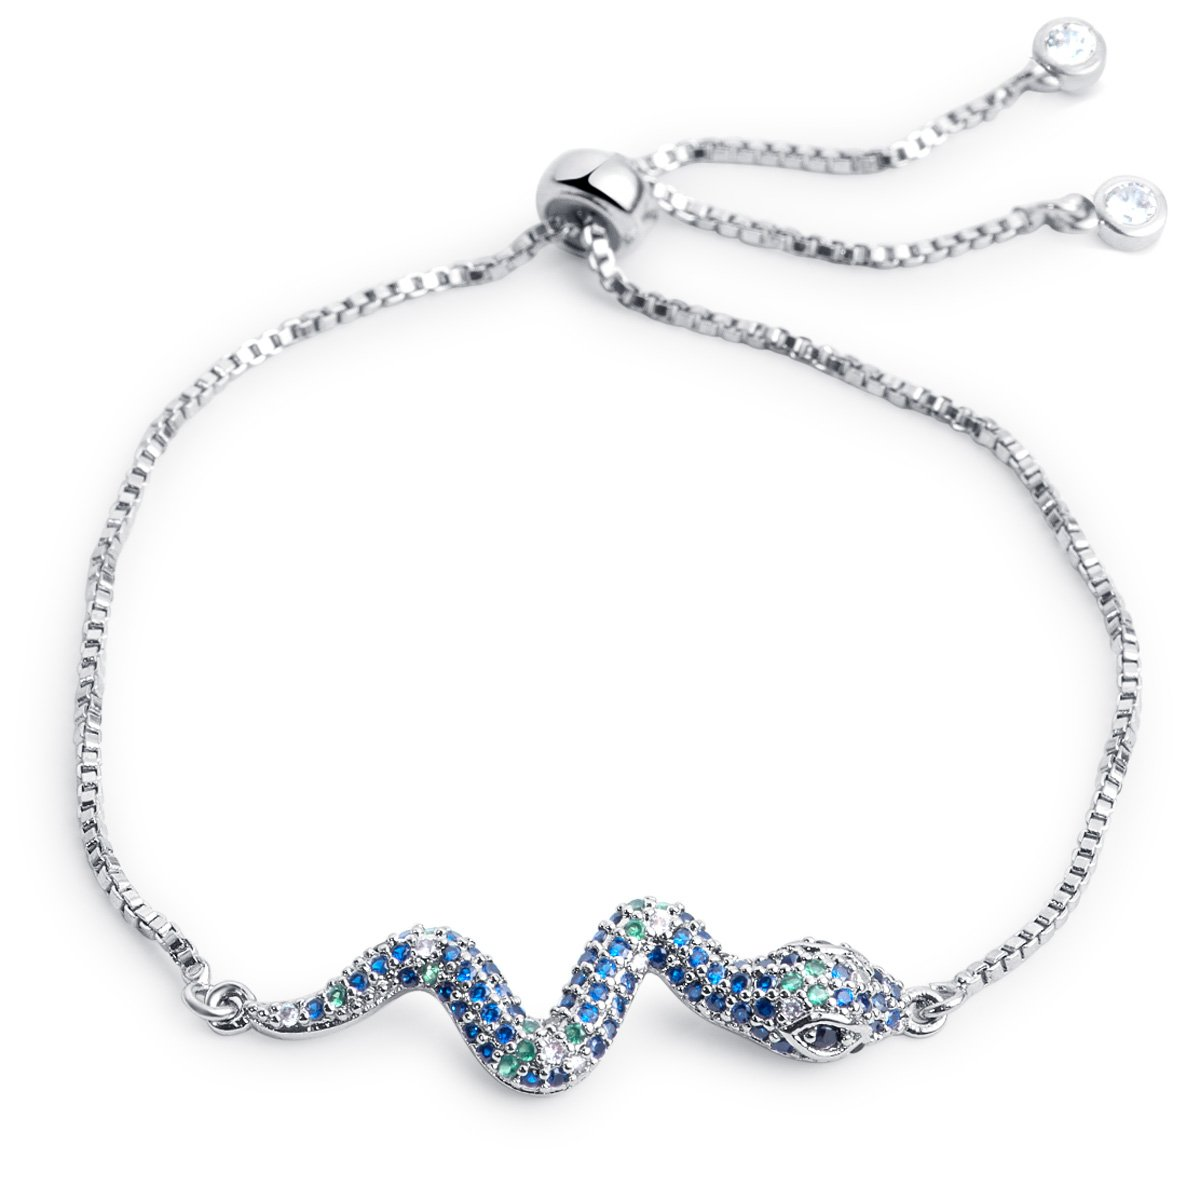 Karseer Snake Shape Bracelet with Adjustable Sliding Metal Knot & Cubic Zirconia Charm Tassel, Color Crystals Micro paved Animal Jewelry Gift for Girls and Women, White Gold